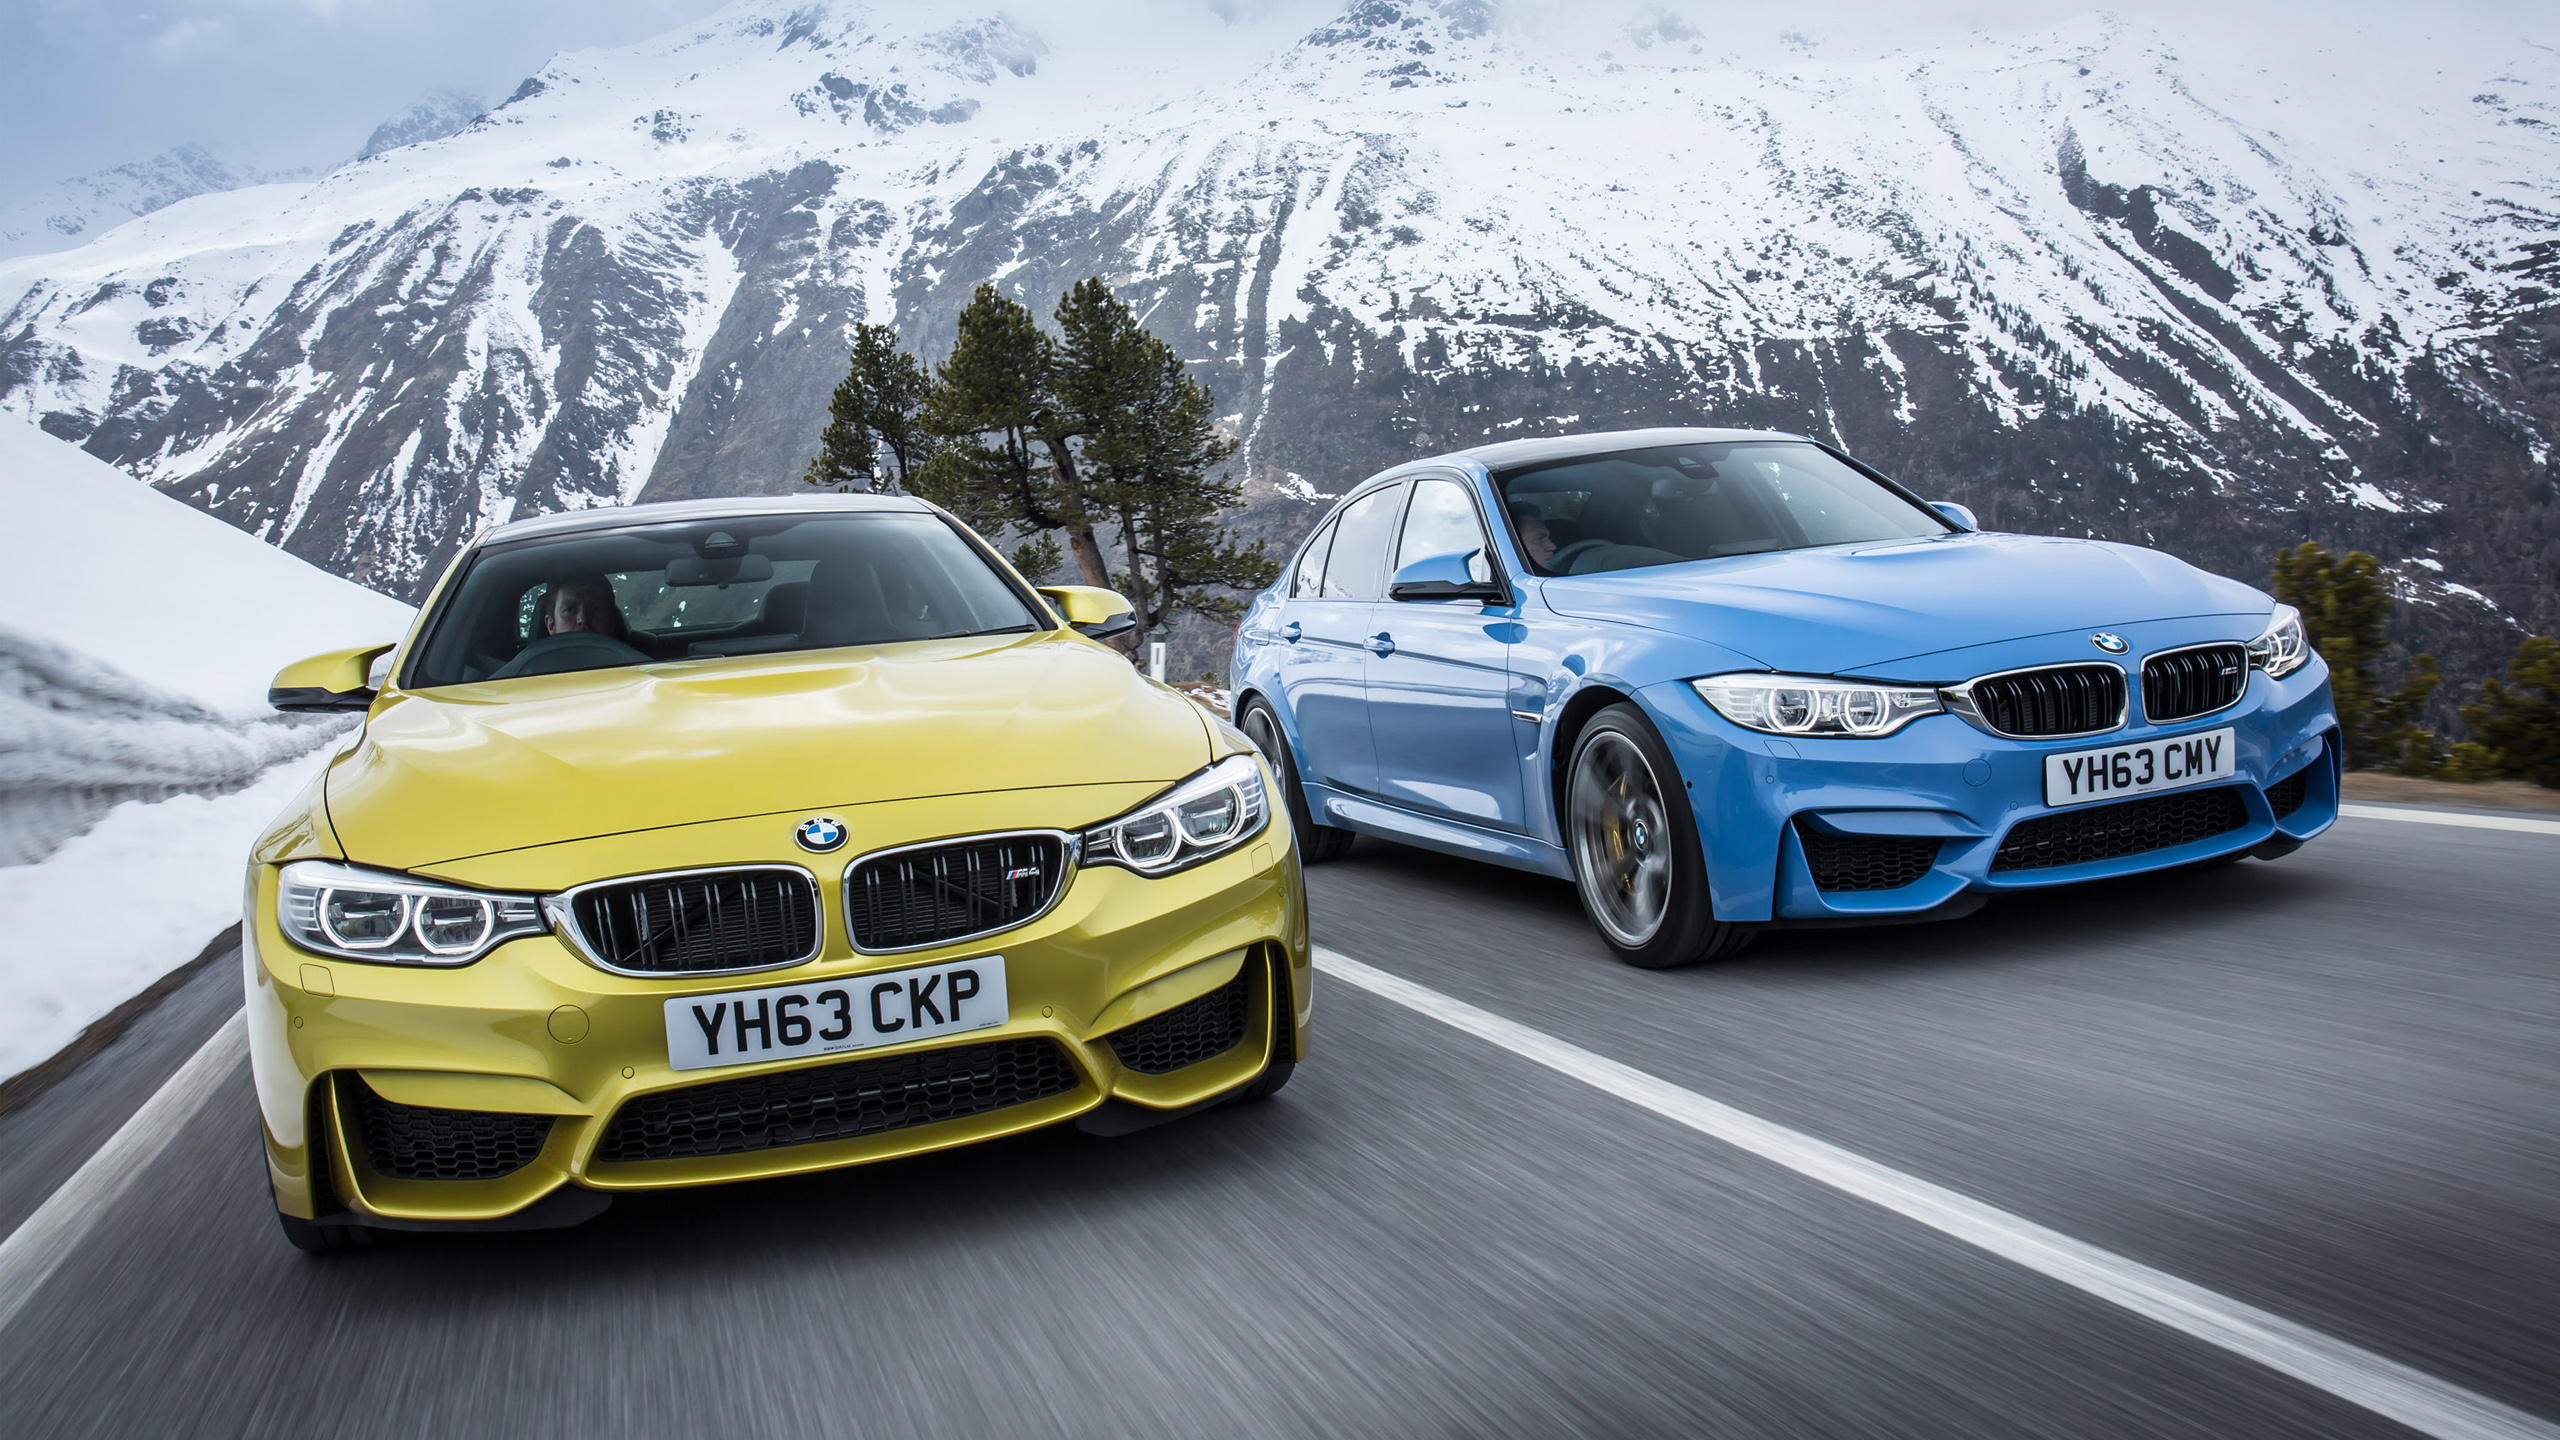 2014 BMW M4 Coupe UK Wallpaper HD Car Wallpapers 2560x1440